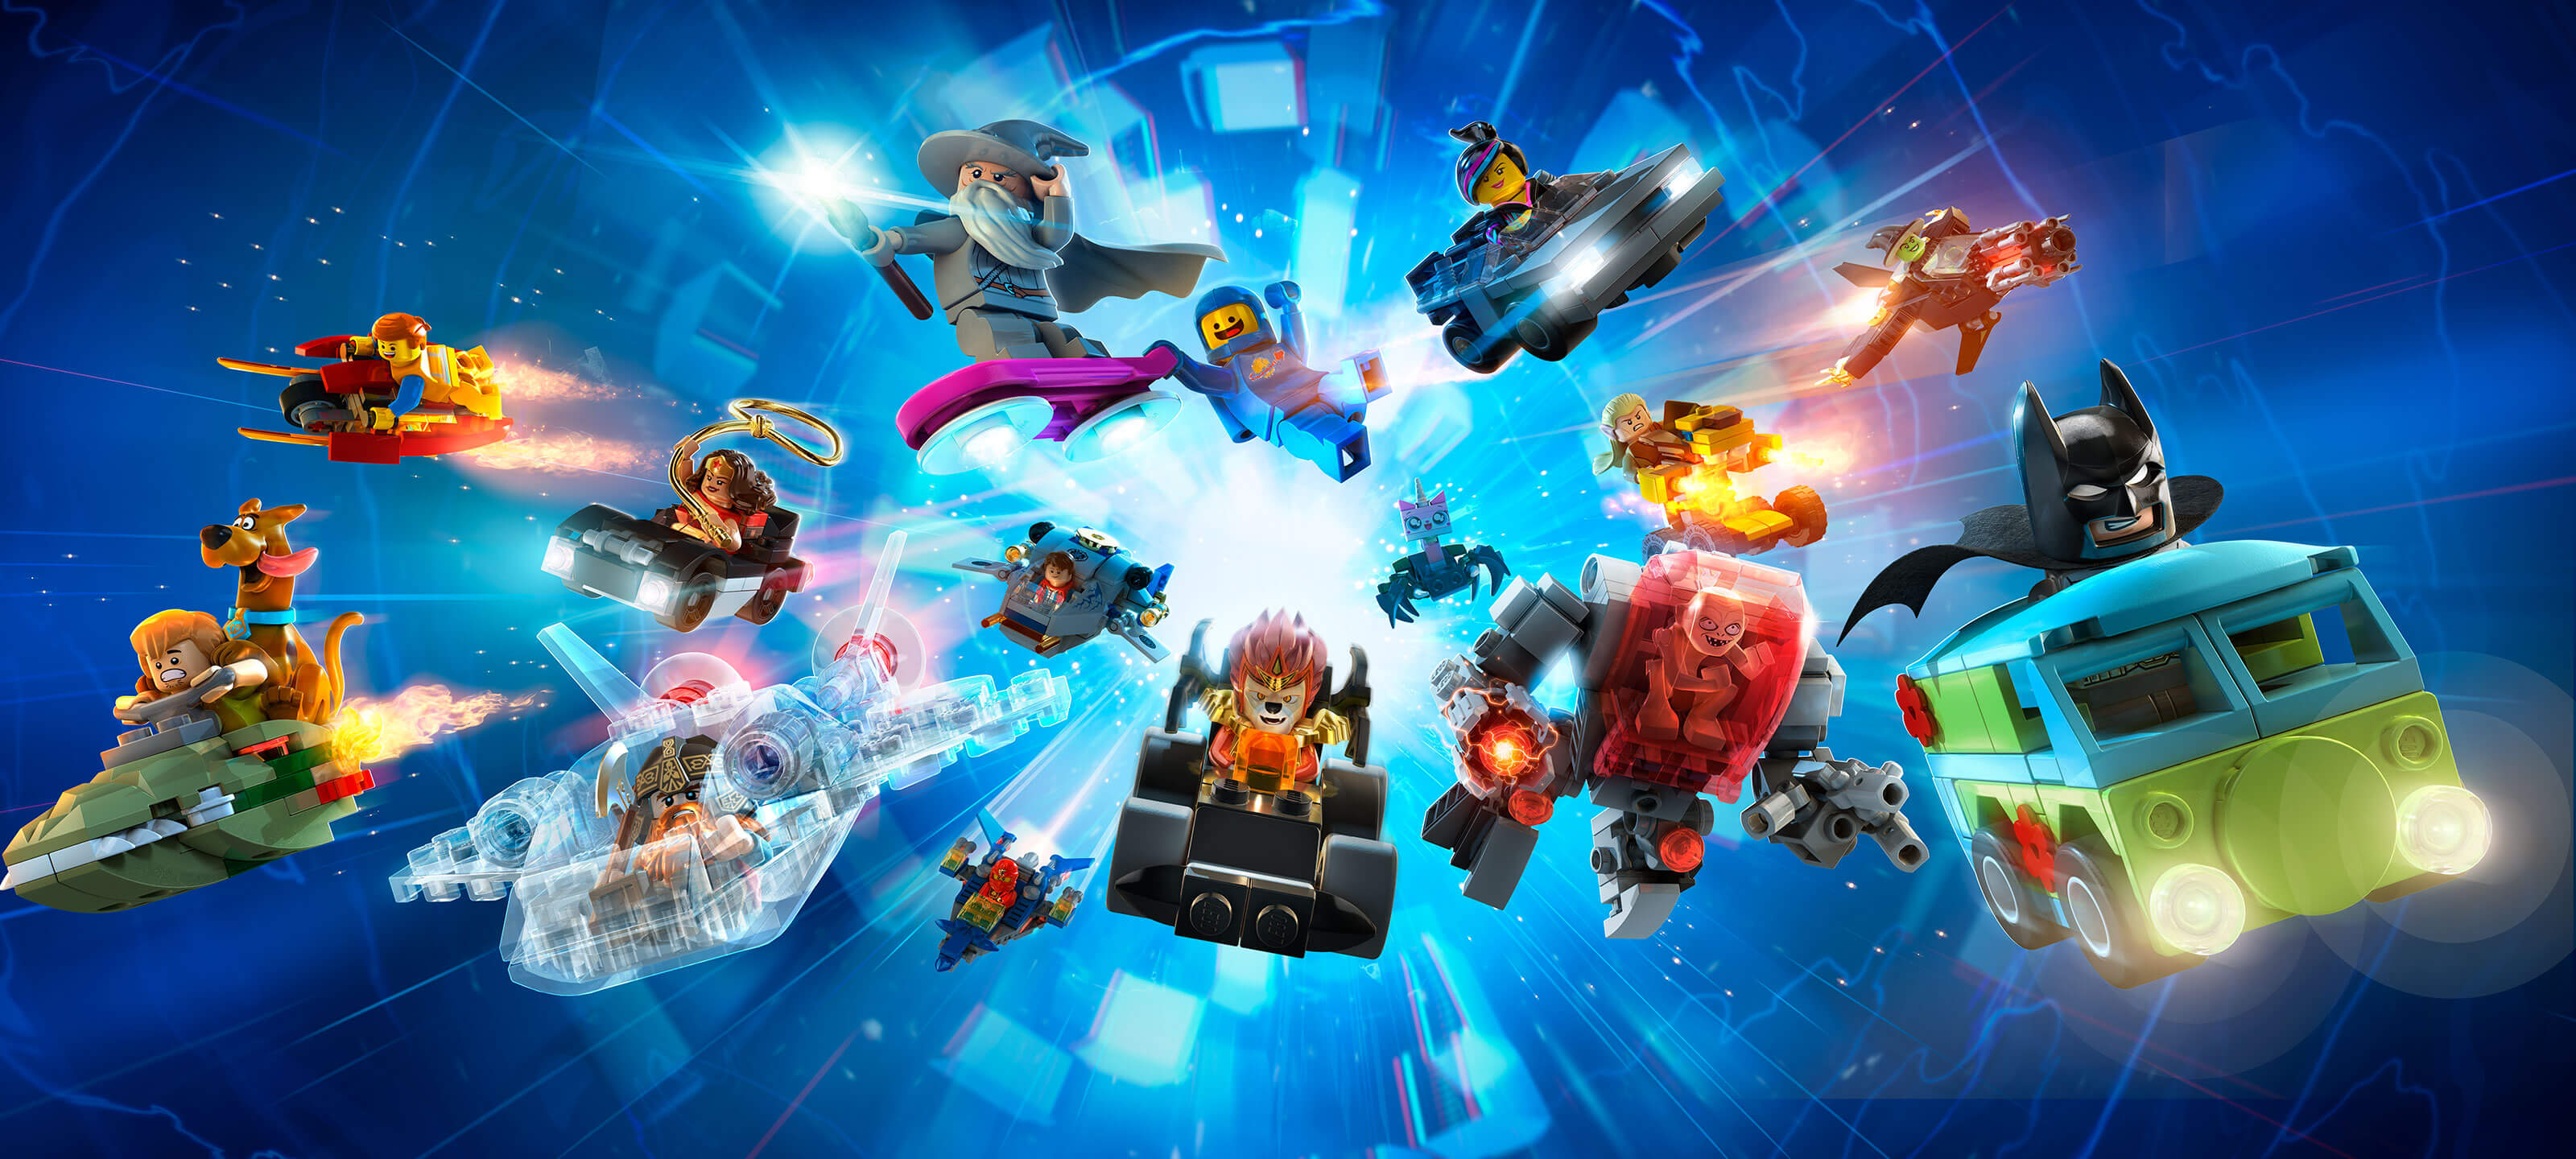 LEGO Dimensions Backgrounds, Compatible - PC, Mobile, Gadgets| 3200x1440 px